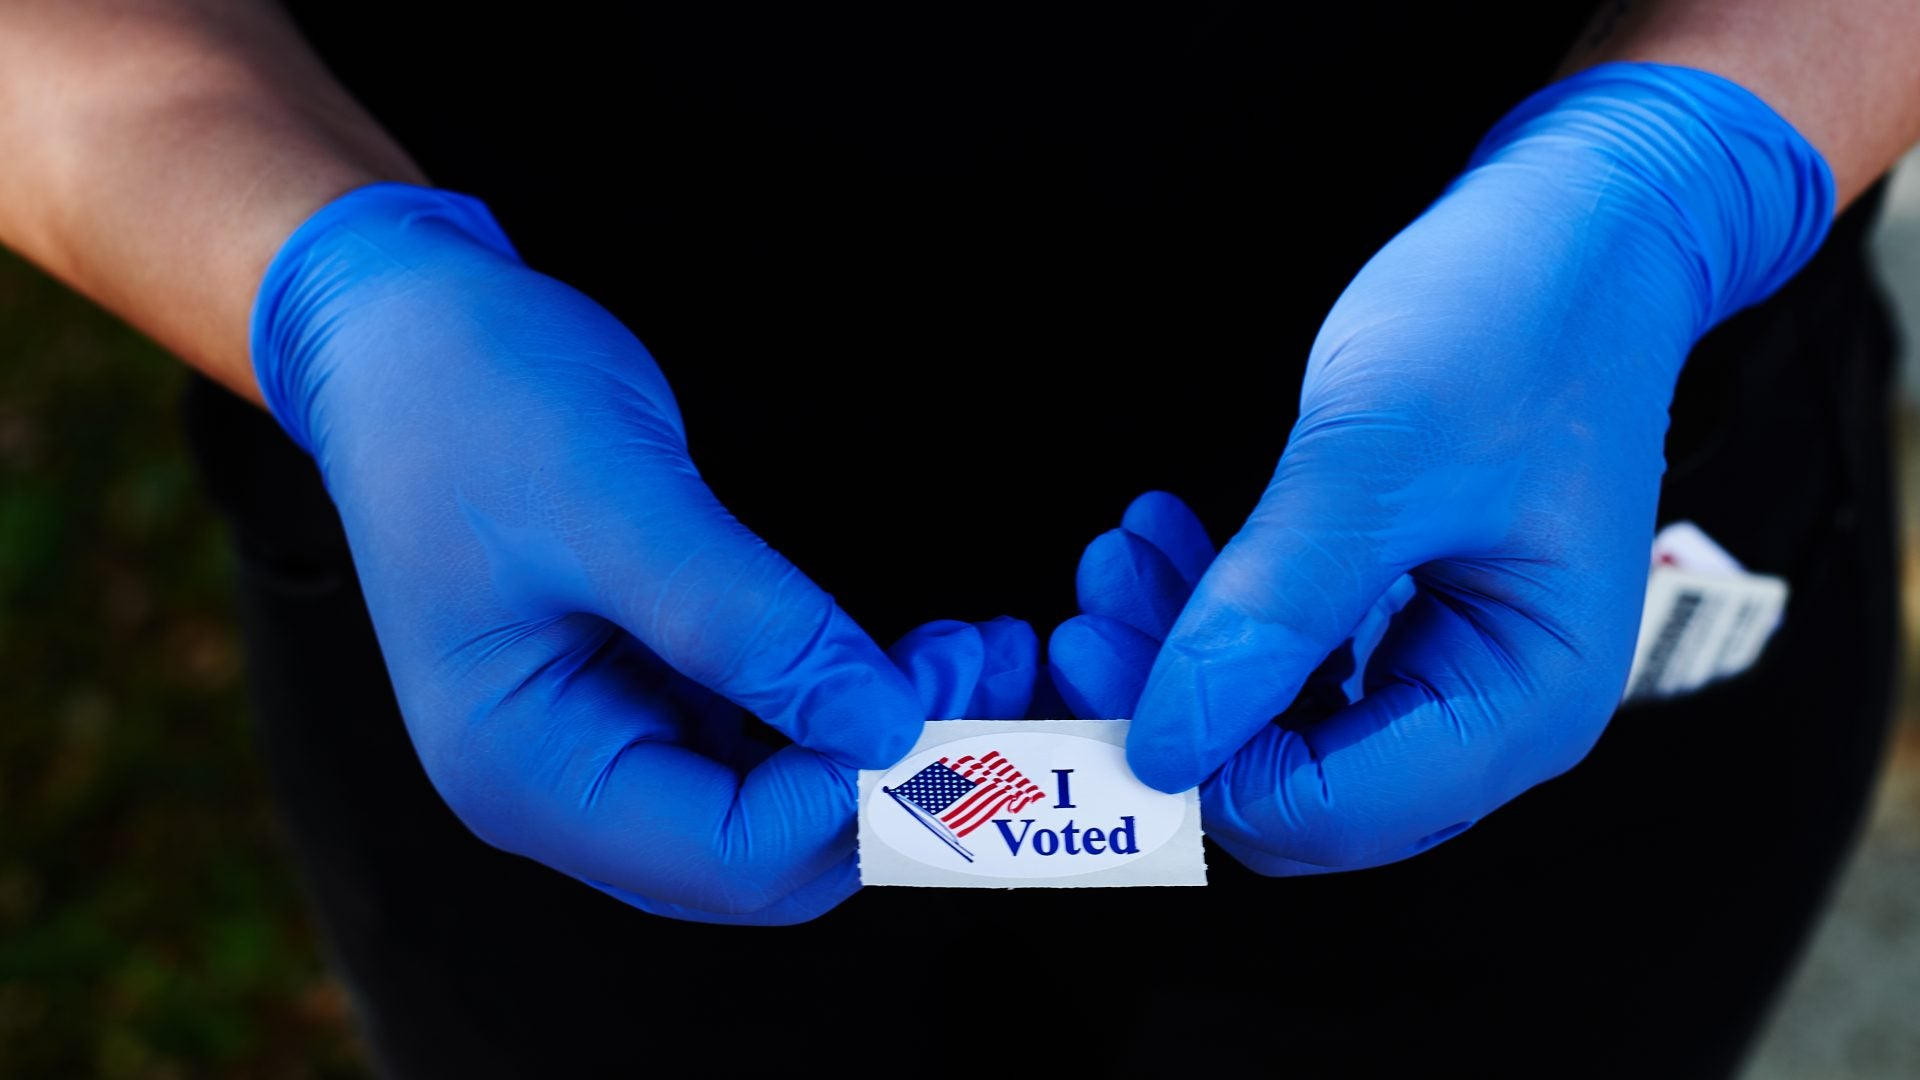 Black Nurse, Leader And Legislator Wants Action To Keep Elections Safe For All Voters